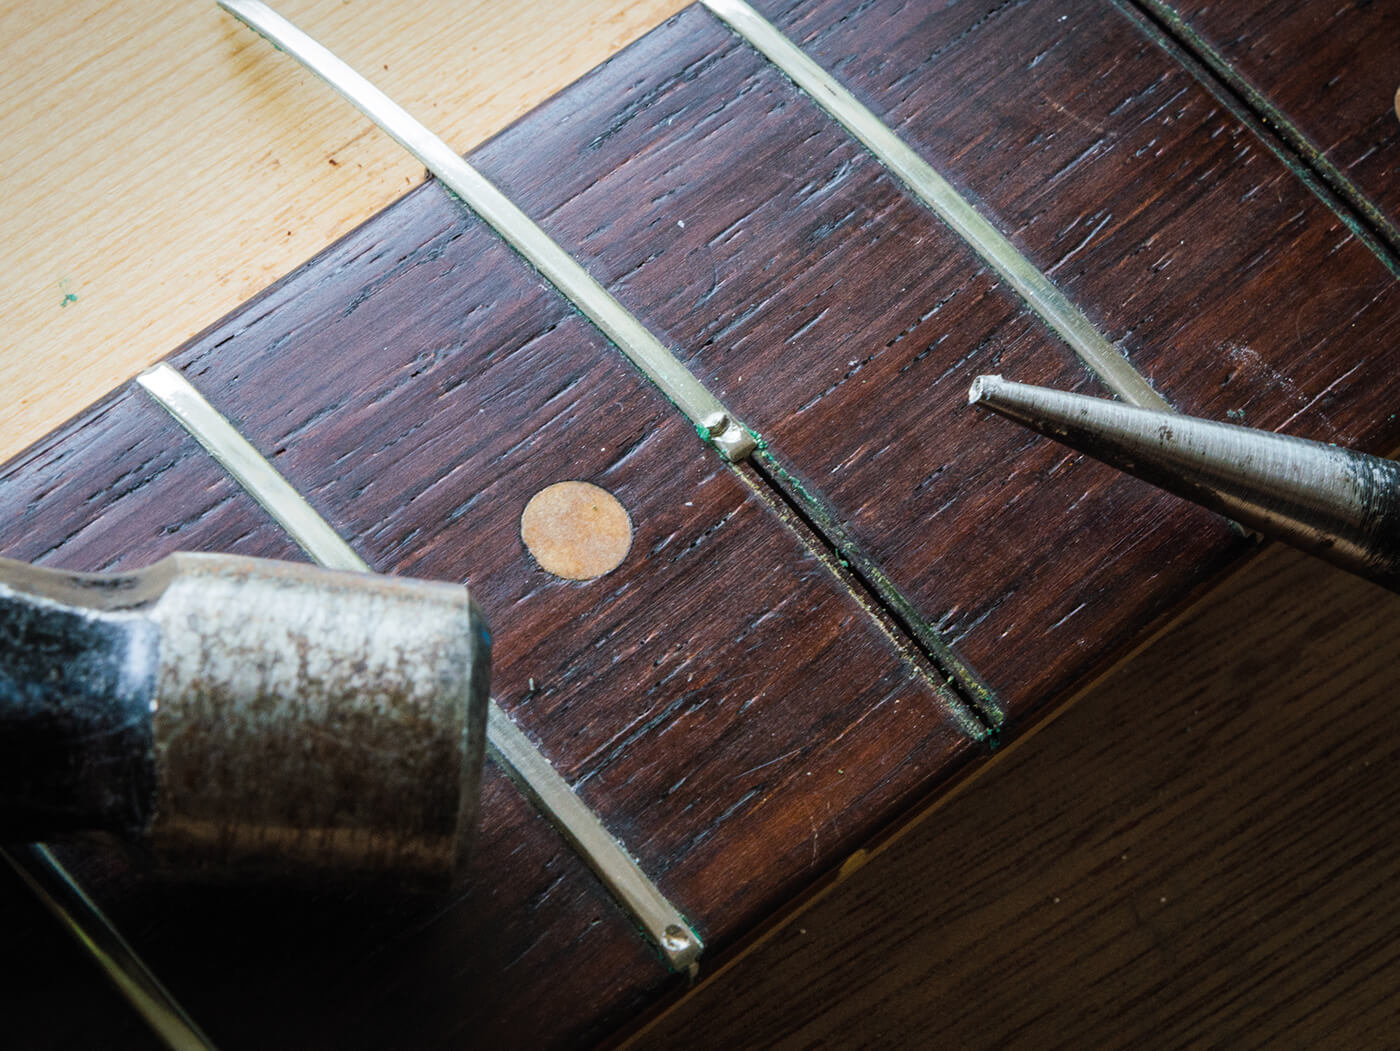 Tapping out frets on strat fingerboard